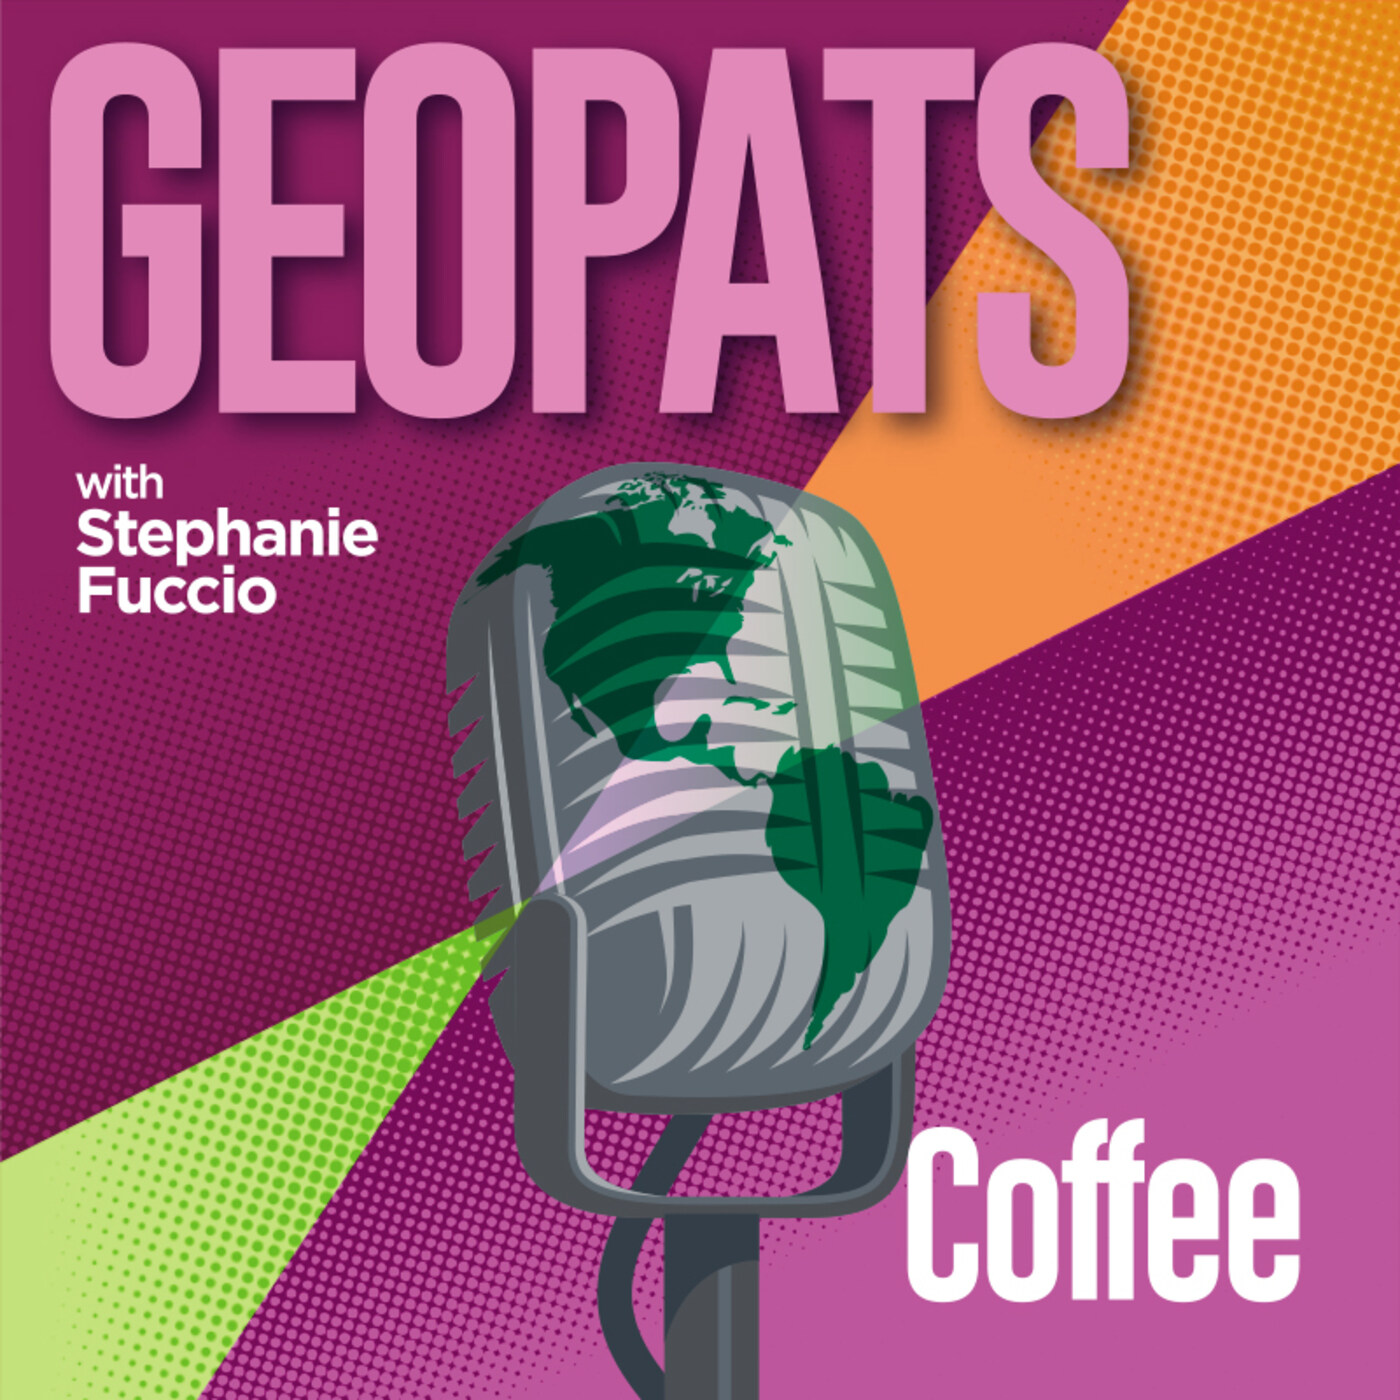 Artwork for podcast Geopats Coffee